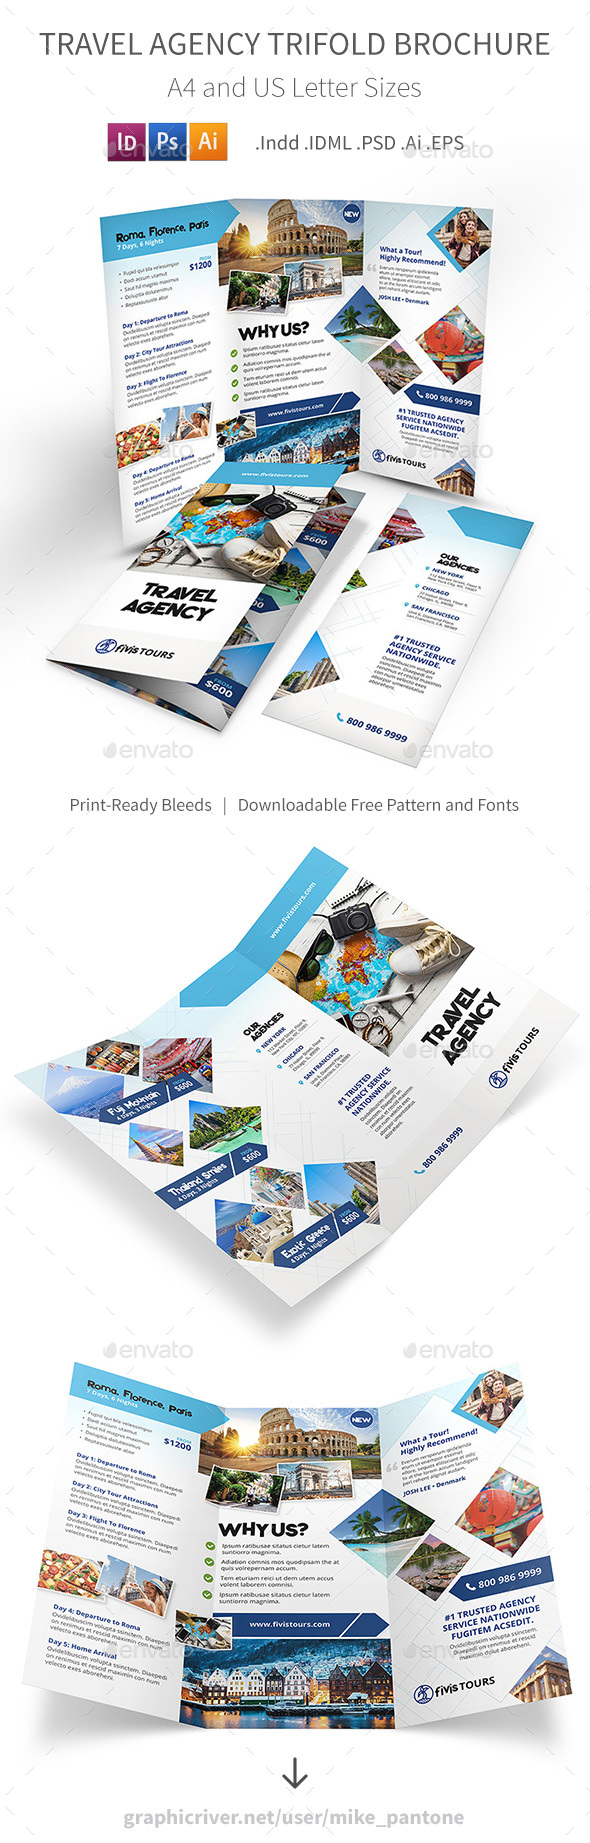 Travel Agency Trifold Brochure 3 - Informational Brochures